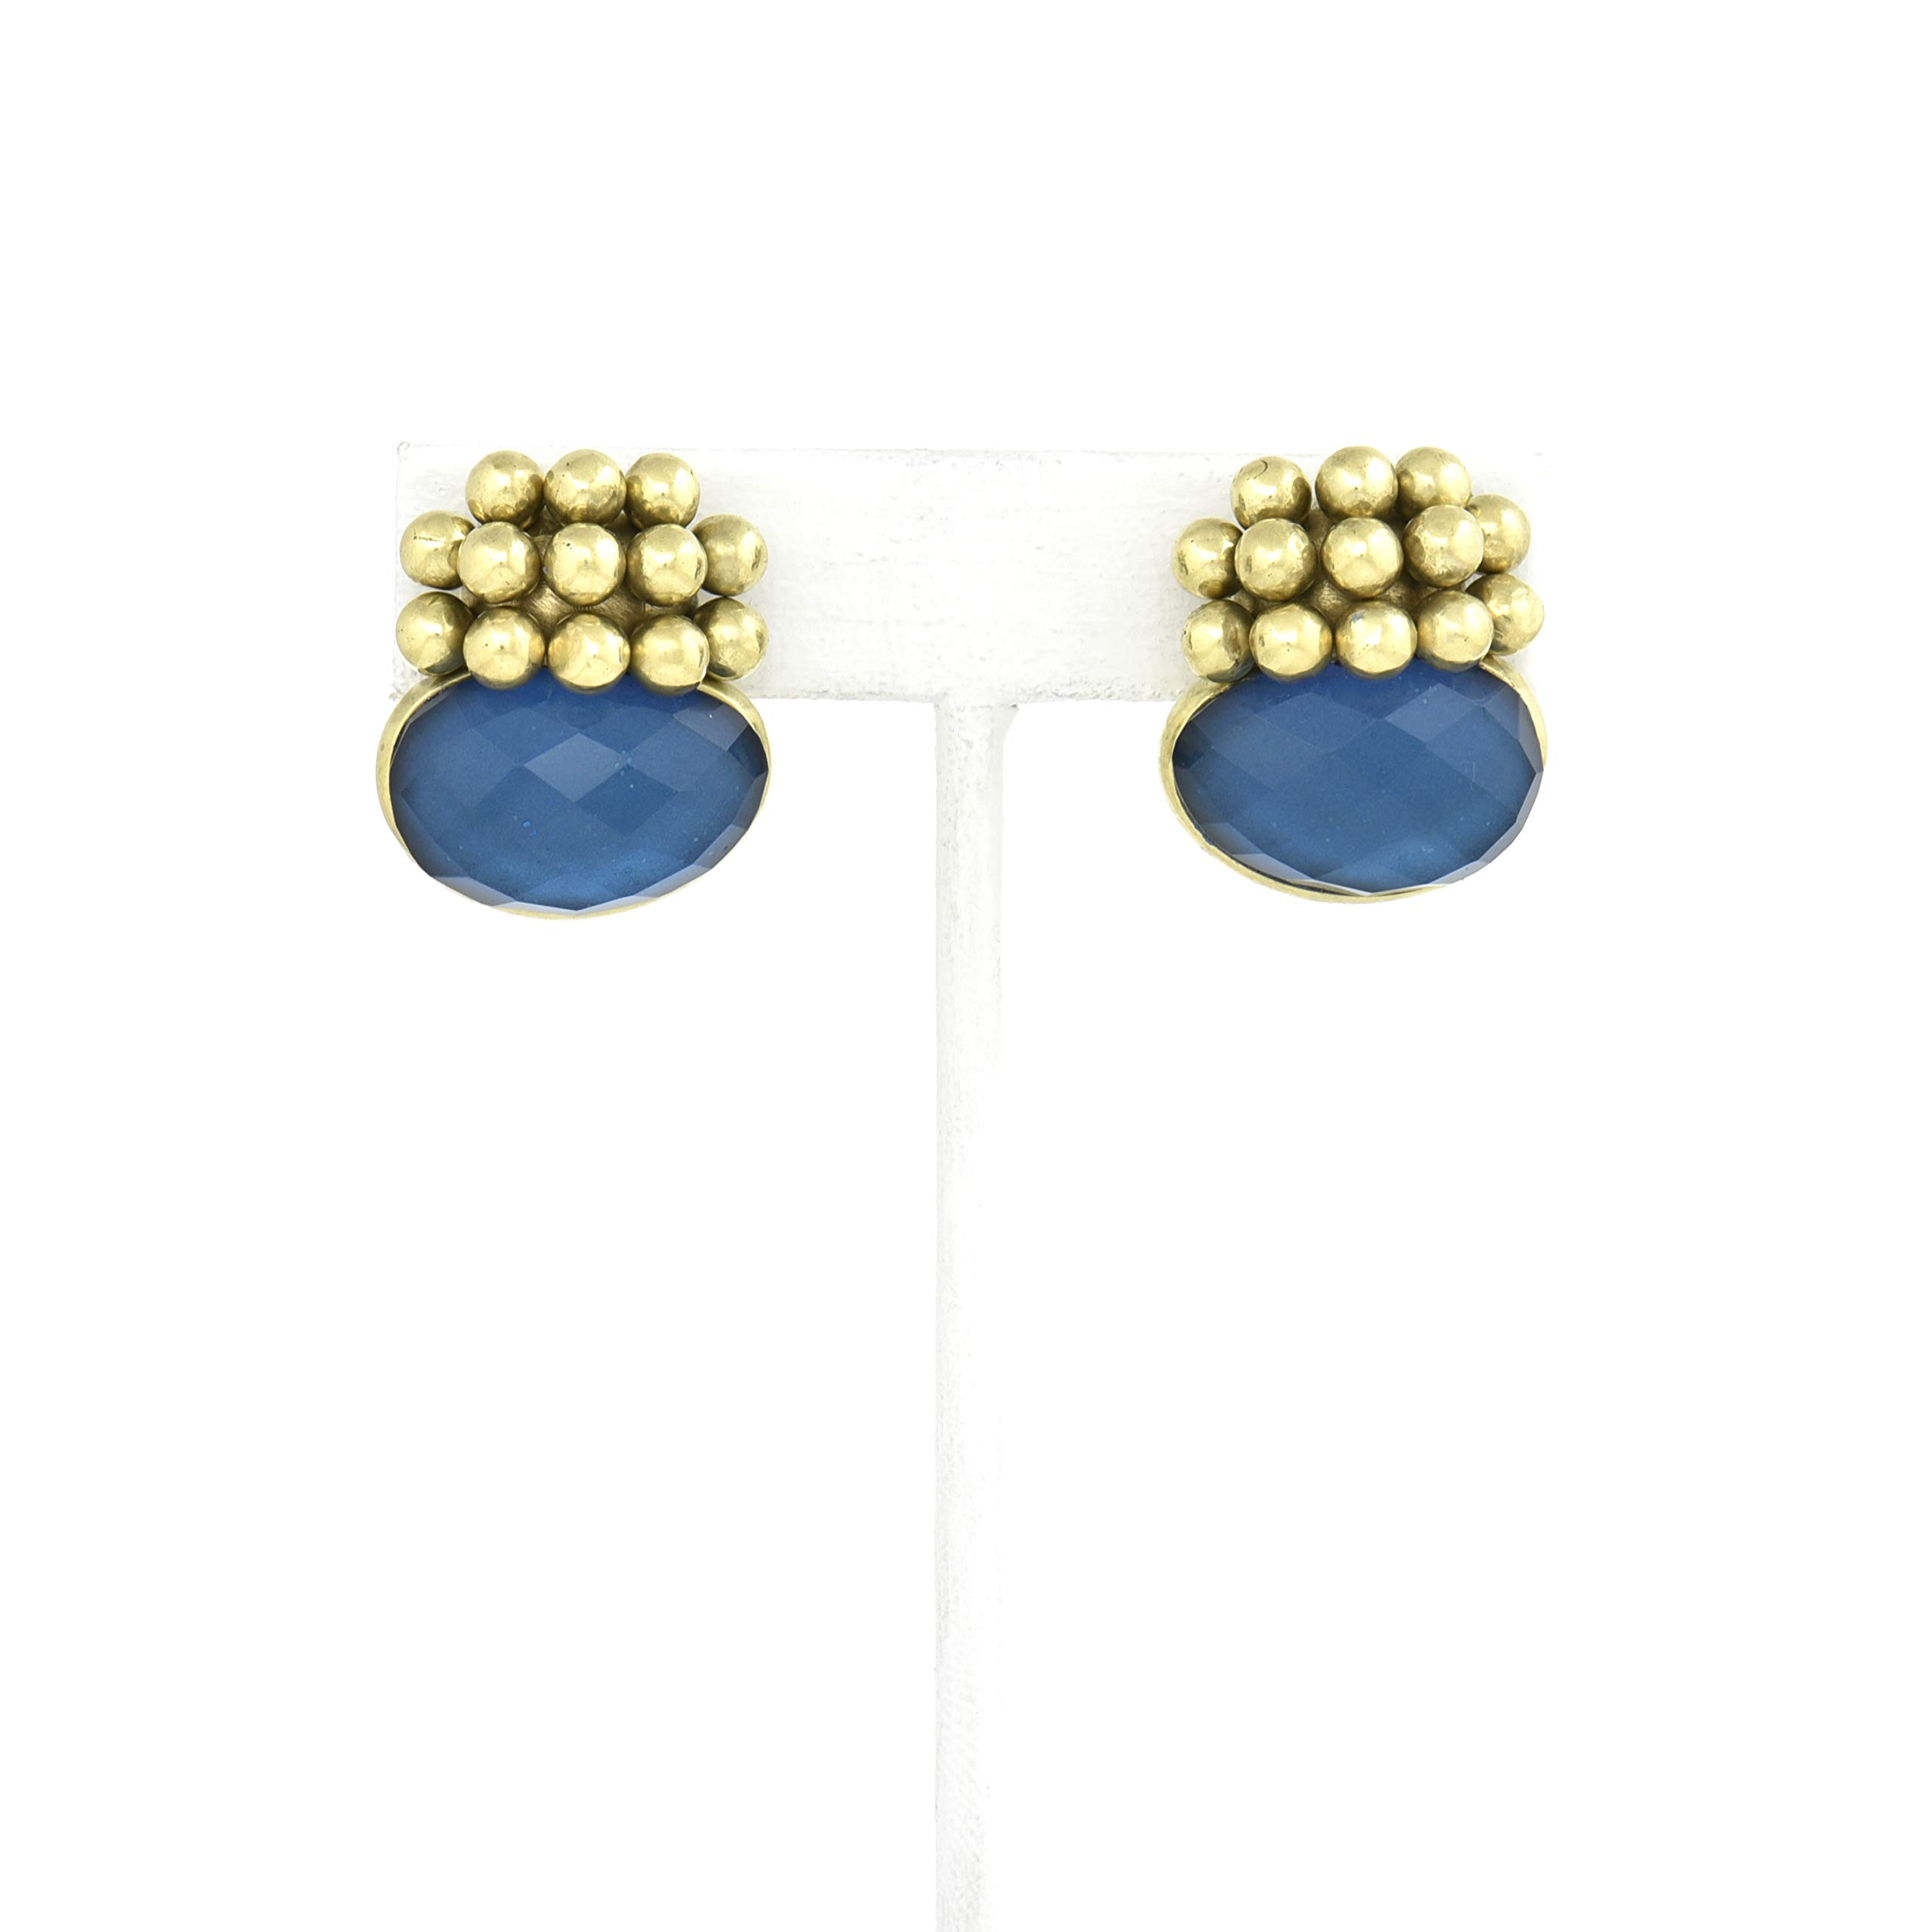 VAUBEL Ball Cluster With Stone Button Clip On Earrings, Green Gold, One Size